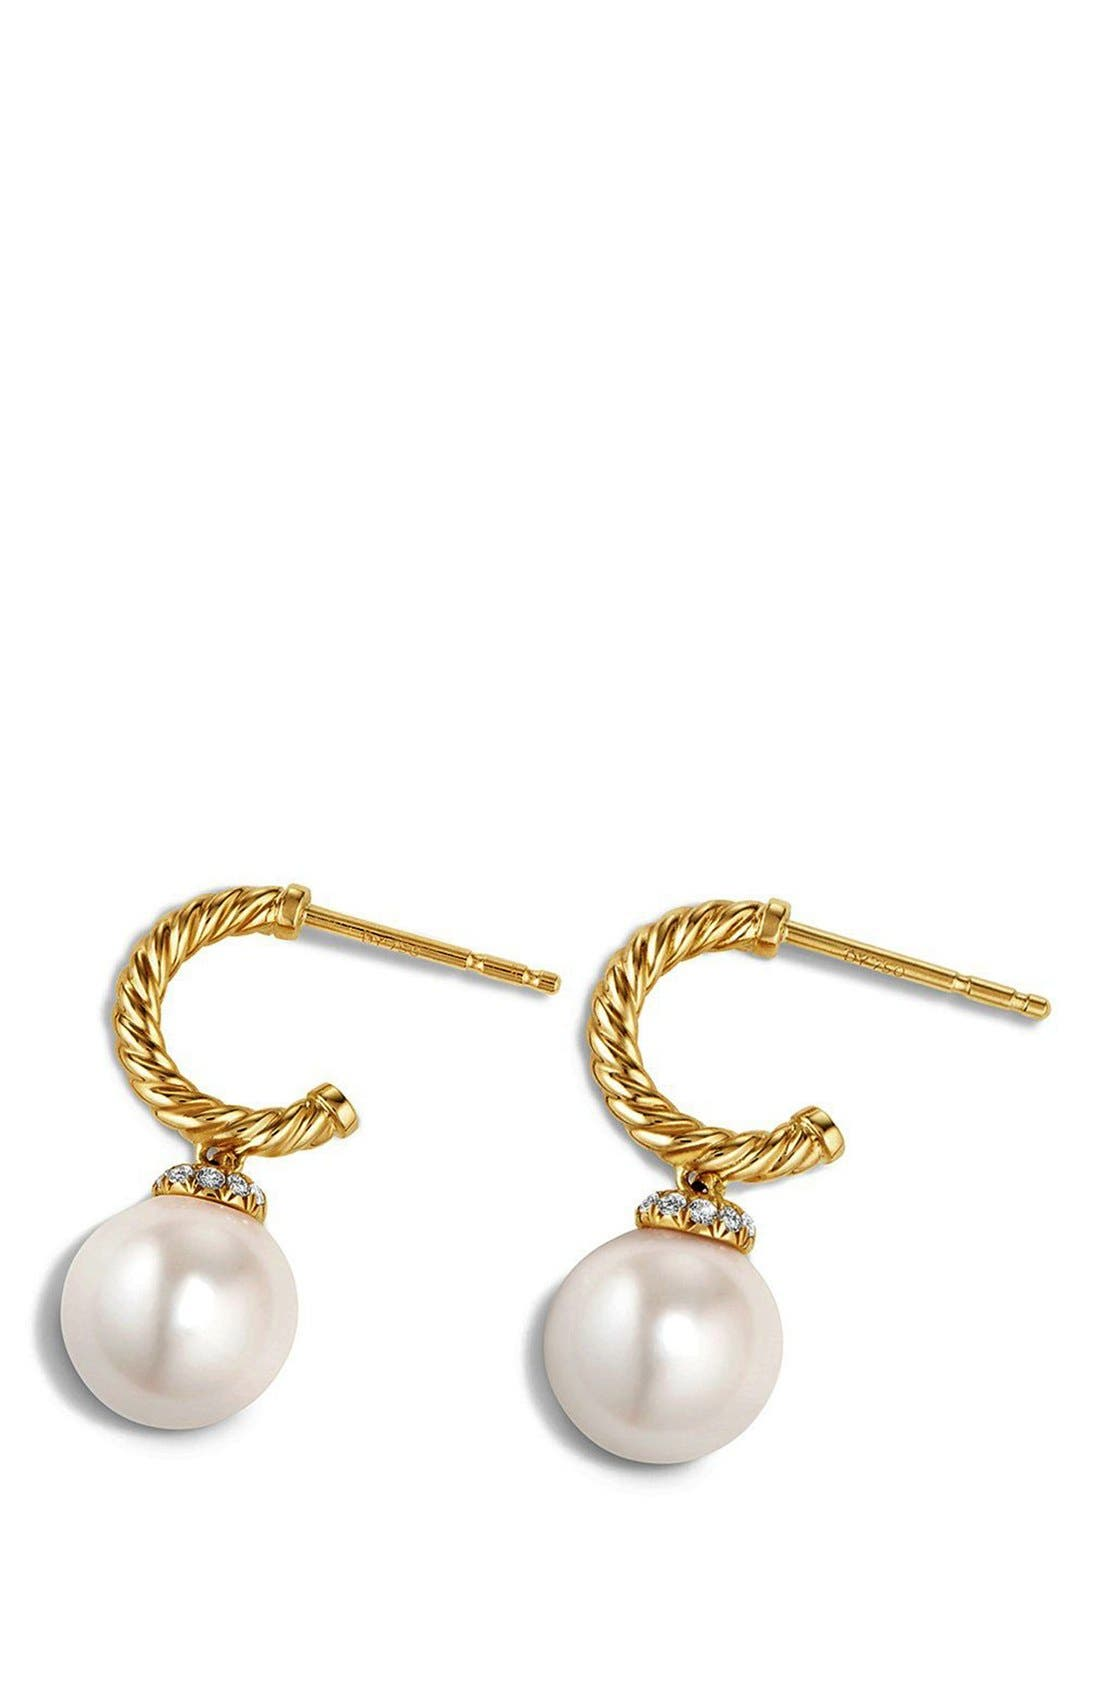 'Solari' Hoop Earring with Diamonds and Pearls in 18K Gold,                             Alternate thumbnail 4, color,                             PEARL